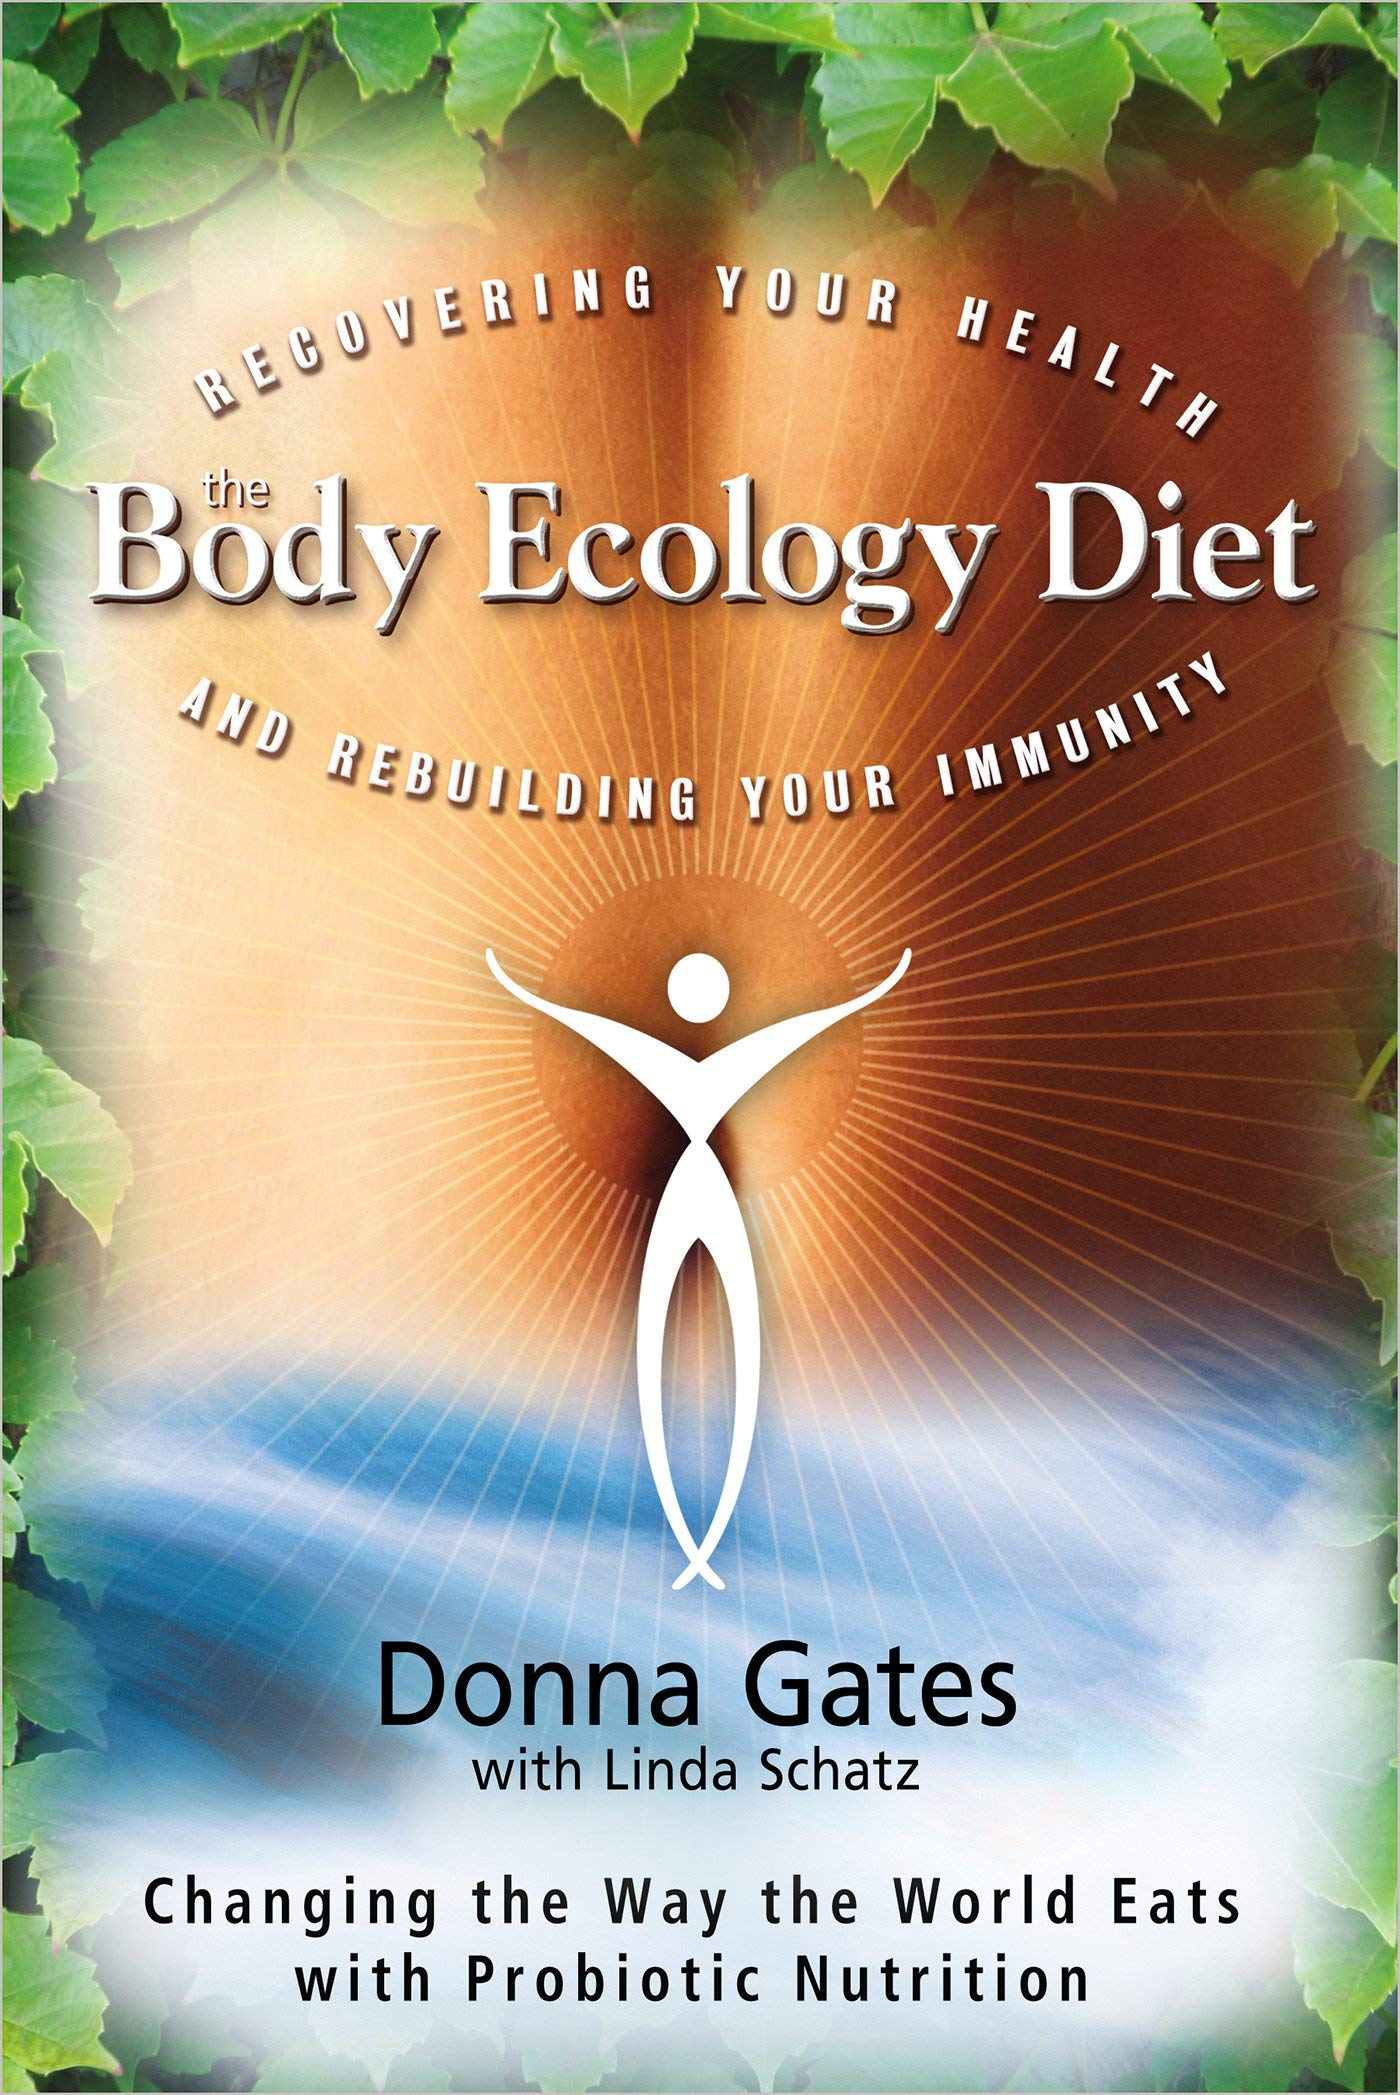 "the body ecology diet - By Donna GatesIf you're experiencing discomfort, fatigue, or other symptoms that won't go away no matter what you do or how many doctors you see, chances are you're one of the millions unknowingly suffering from a systemic fungal/yeast infection, ""the hidden invader."" The result of an imbalance starting in your internal ecosystem, this can be a key factor in headaches, joint and muscle pain, depression, cancer, food allergies, digestive problems, autism, and other immune-related disorders.The Body Ecology Diet reveals how to restore and maintain the ""inner ecology"" your body needs to function properly, and eliminate or control the symptoms that rob you of the joy of living. Tens of thousands of people have already benefited from the Body Ecology way of life—Donna Gates shows you, step-by-step, how to eat your way to better health and well-being . . . deliciously, easily, and inexpensively!In this book, you will learn how to: use seven basic universal principles as tools to gain mastery over every health challenge you may encounter; focus on your inner ecology to create ideal digestive balance; conquer cravings with strategies for satisfying snacking and for dining away from home; and plan meals with dozens of delectable recipes, an array of menus, and detailed shopping lists."